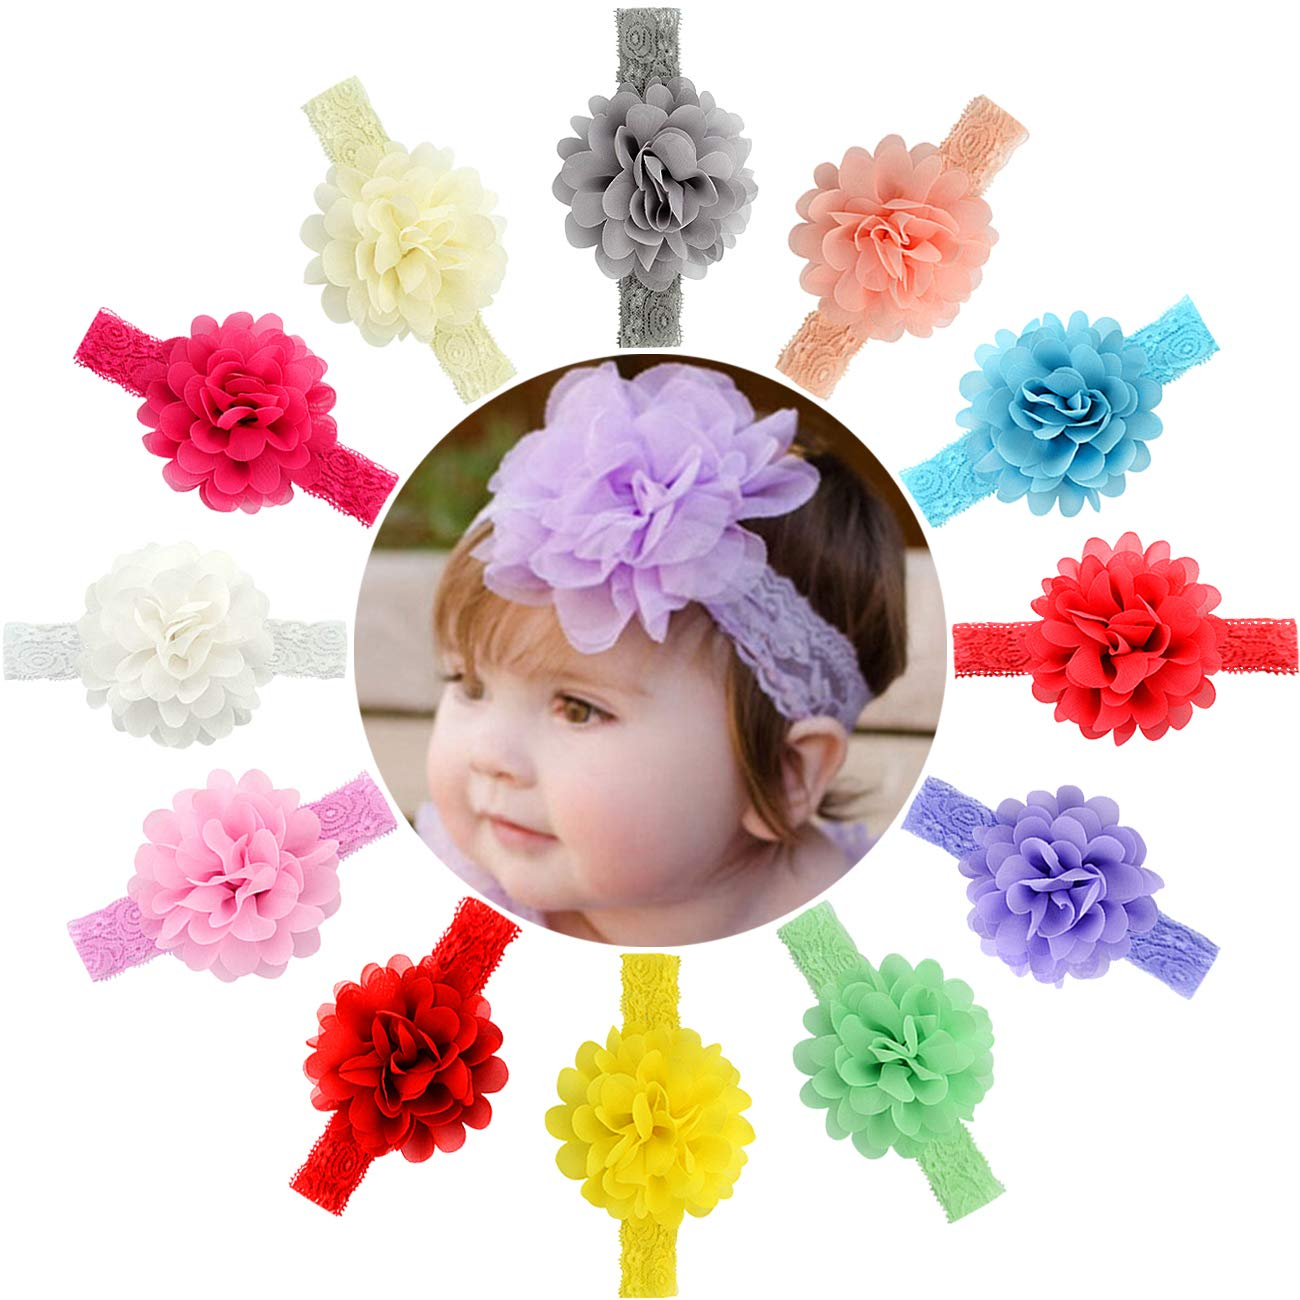 Clothing, Shoes & Accessories 100% True Cute Baby Headband Newborn Infant Toddler Girl Flower Hair Accessories Traveling Hair Accessories